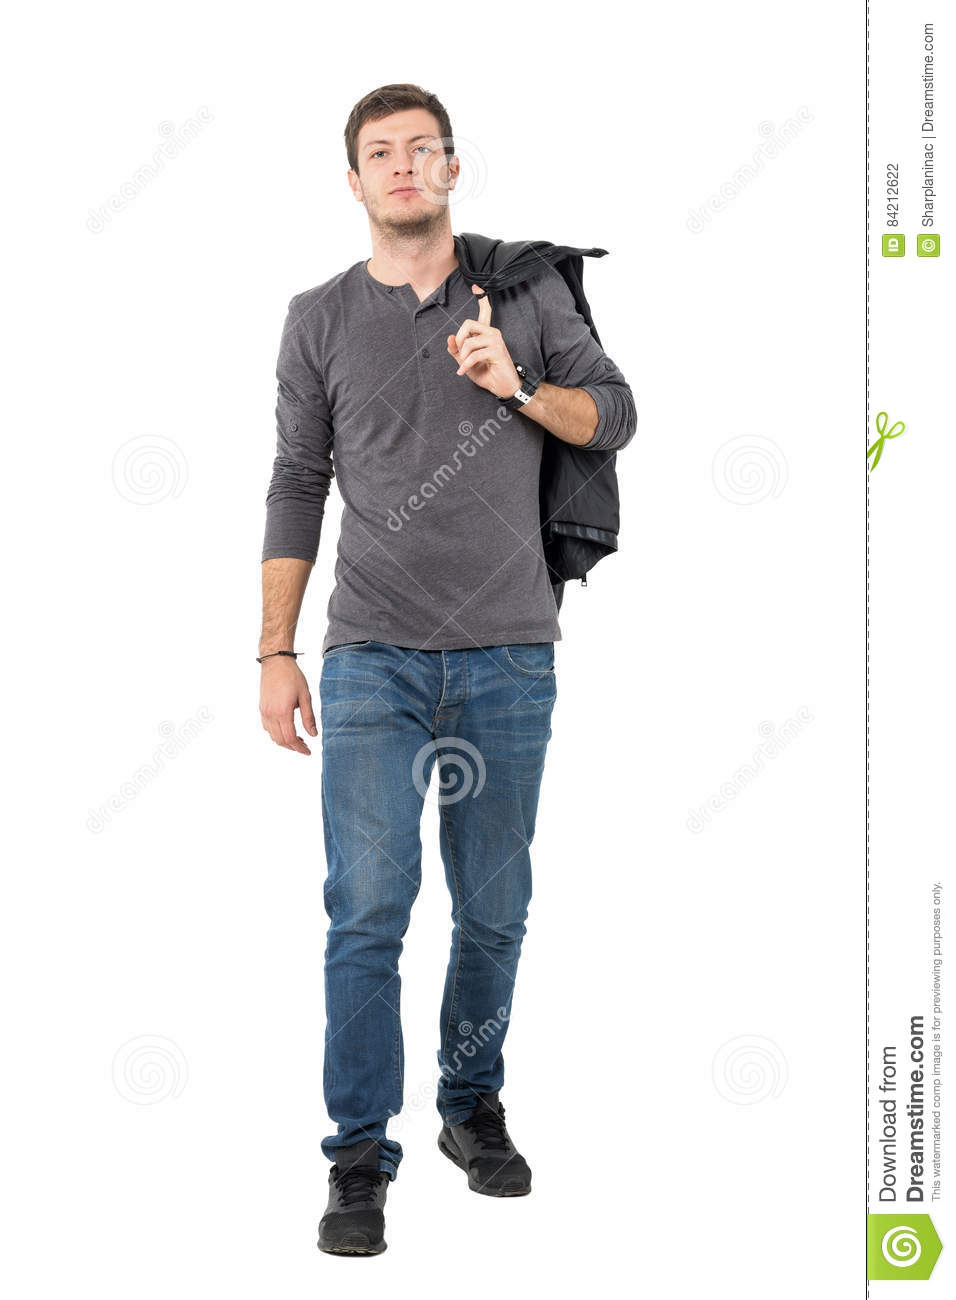 752b2c3bc0 Casual young man walking forward carrying jacket over shoulder looking at  camera. Full body length portrait isolated over white background.